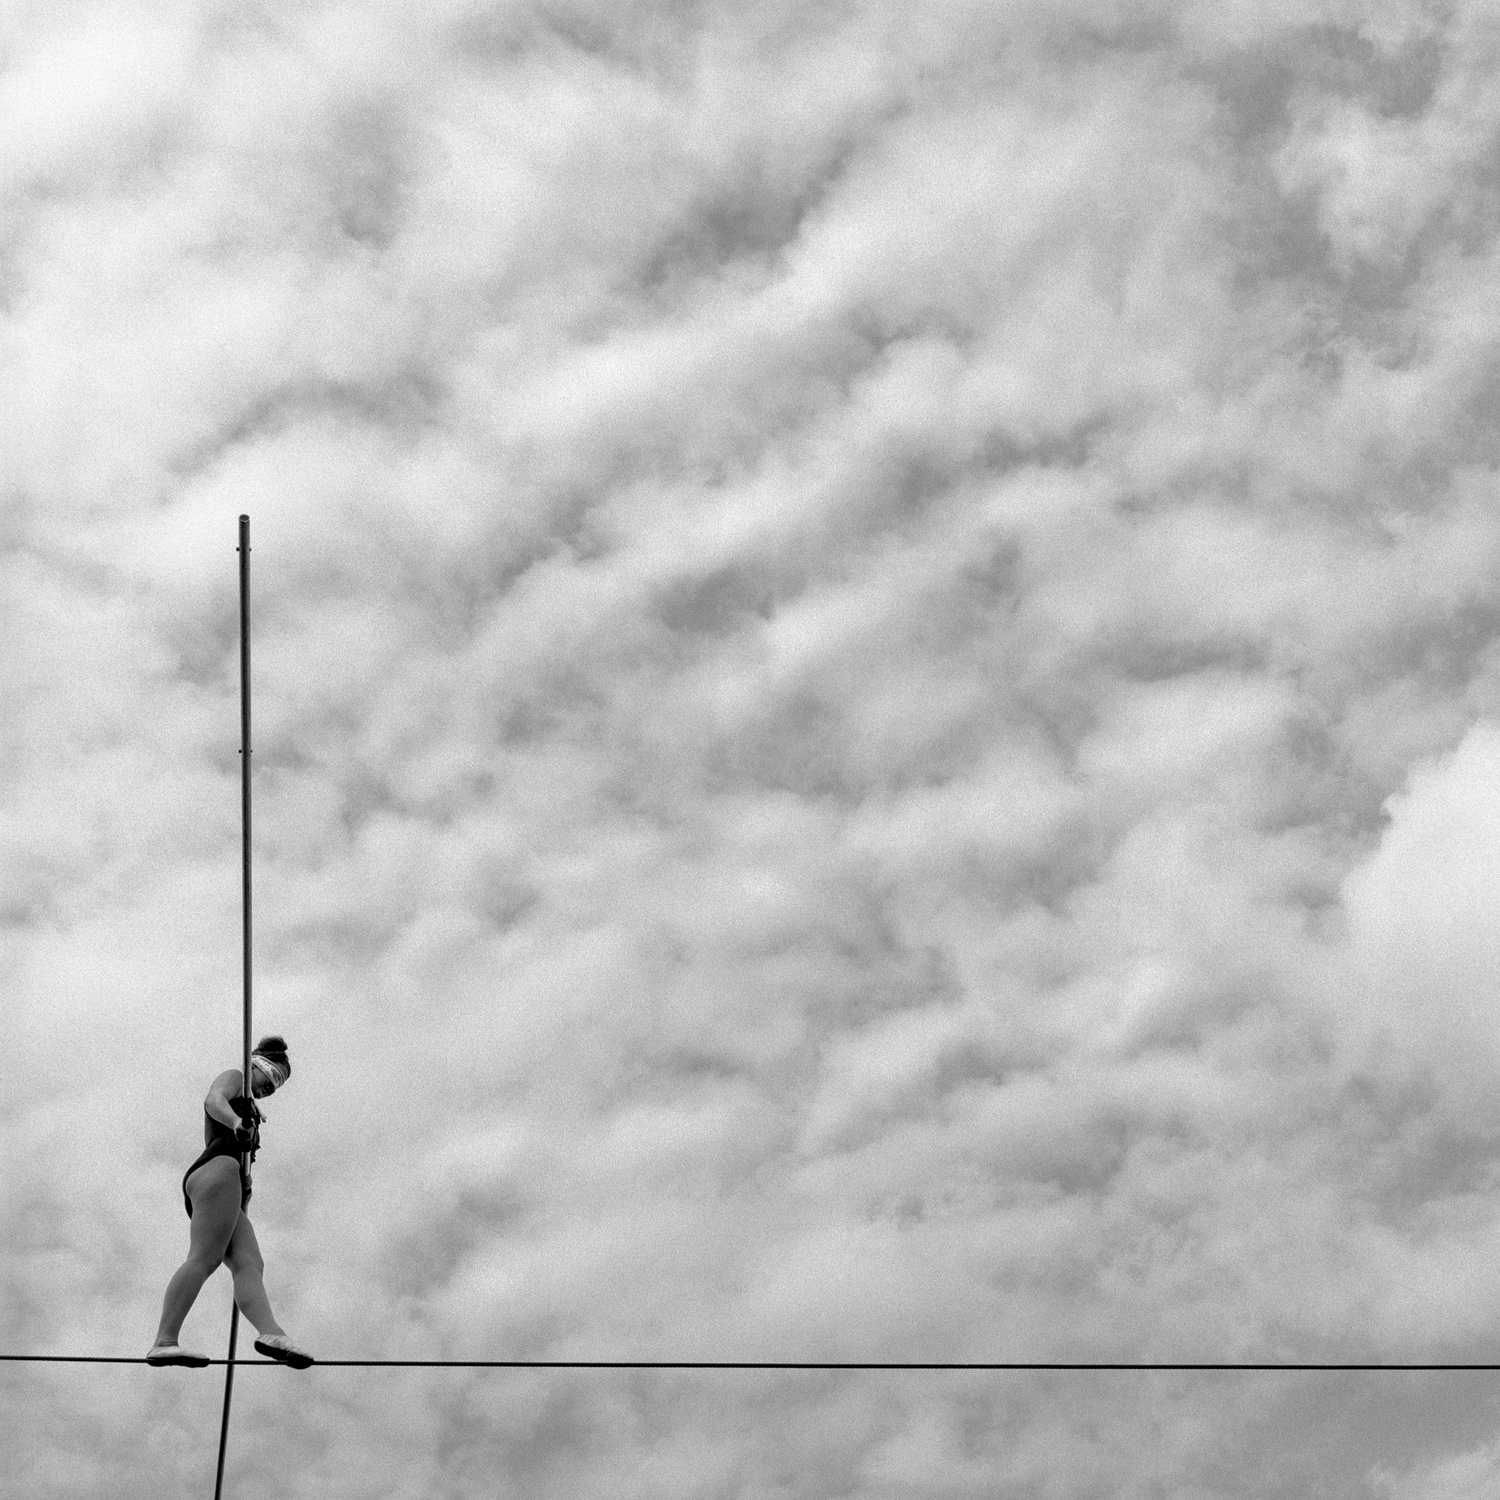 Tarrin Cooper moves across the high wire, blindfolded, at a road show in Reynolds, Indiana. She is the great granddaughter of Clyde Beatty, a lion tamer who made his home in Peru decades earlier.